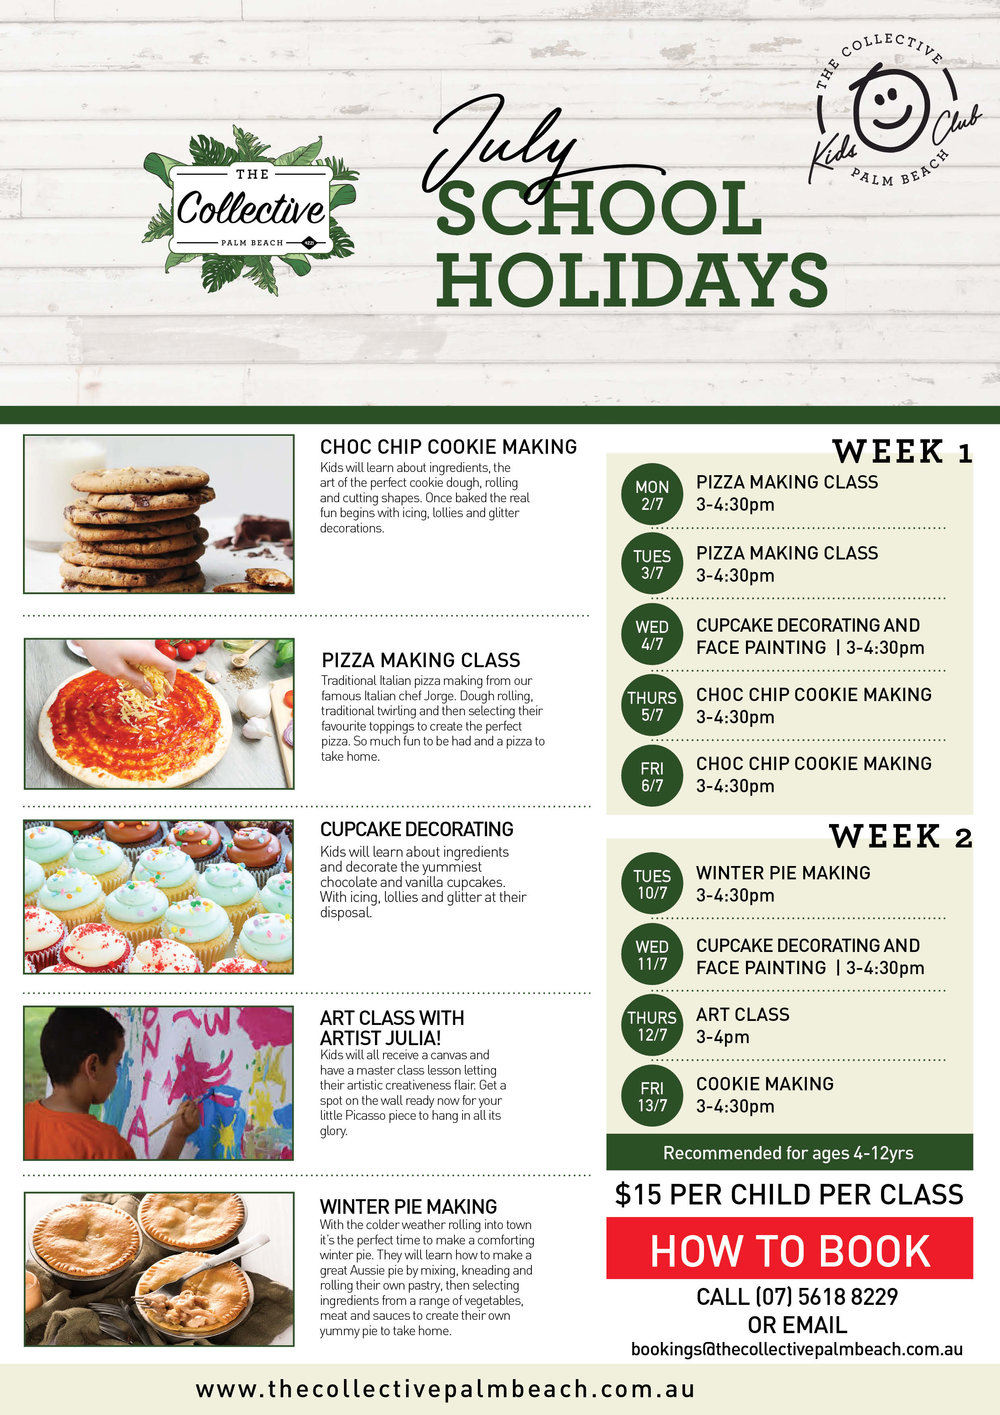 July School Holidays-The Collective.jpg